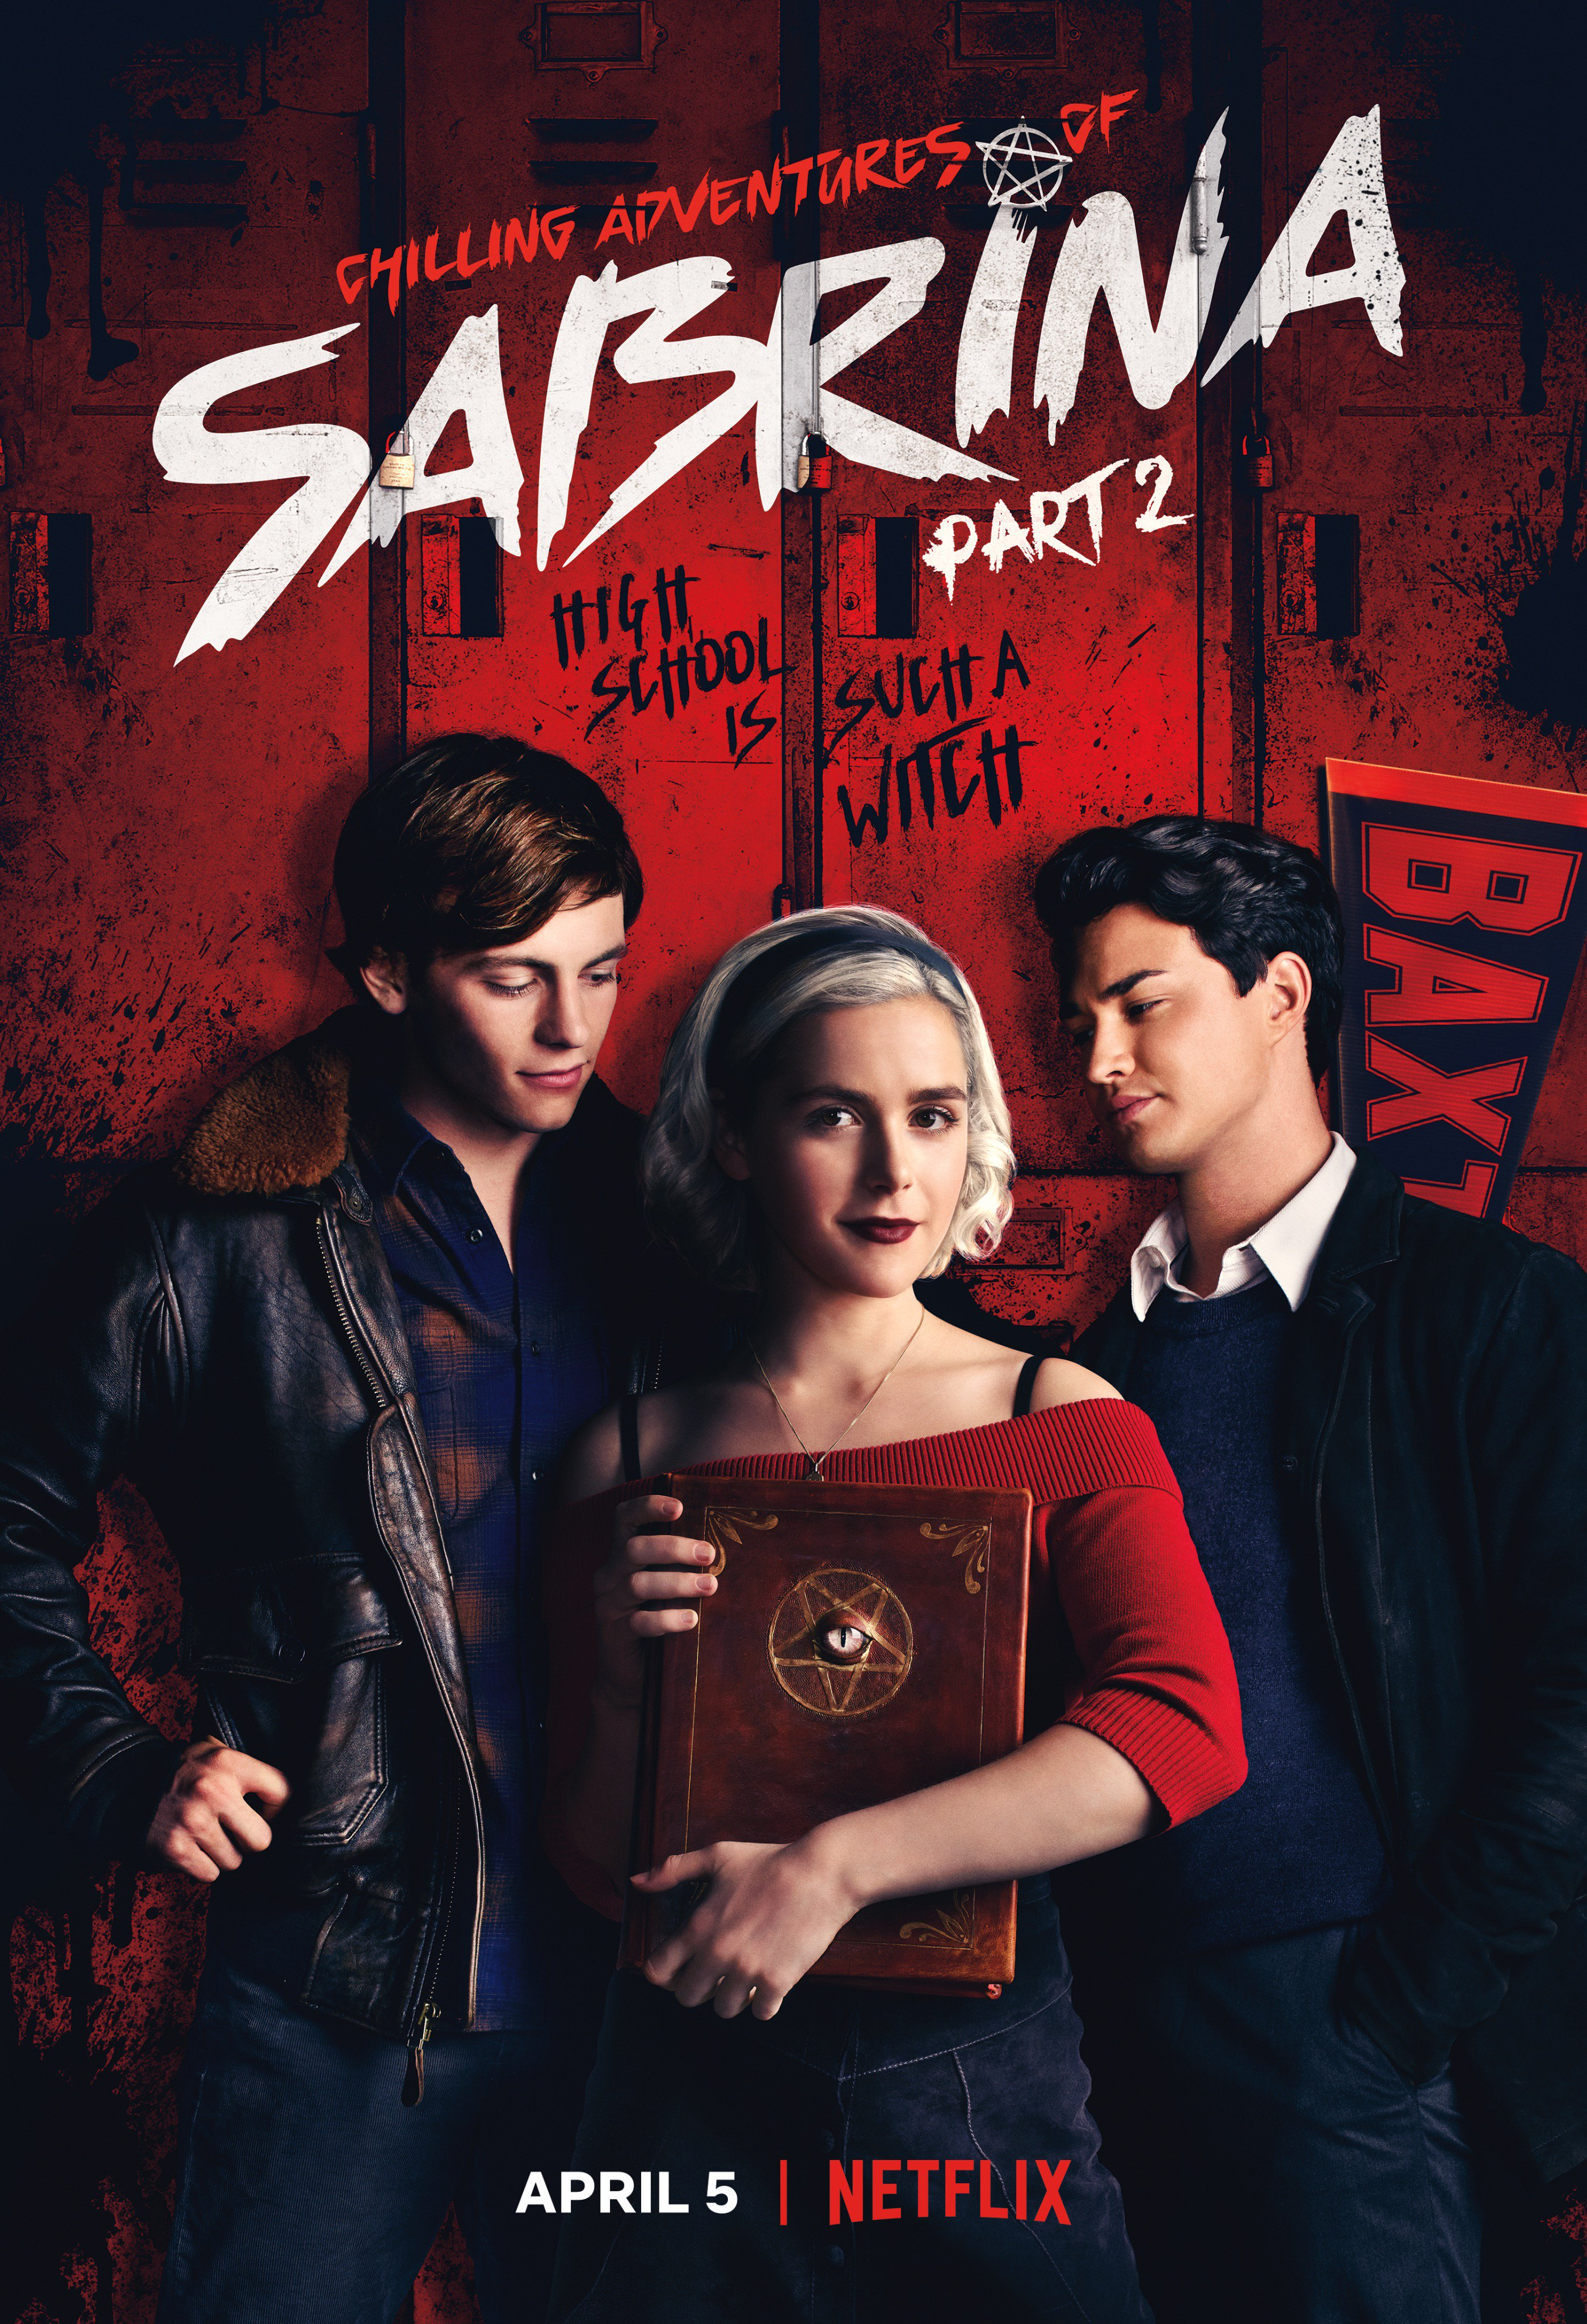 Chilling Adventures Of Sabrina Part 2 Poster Sees The